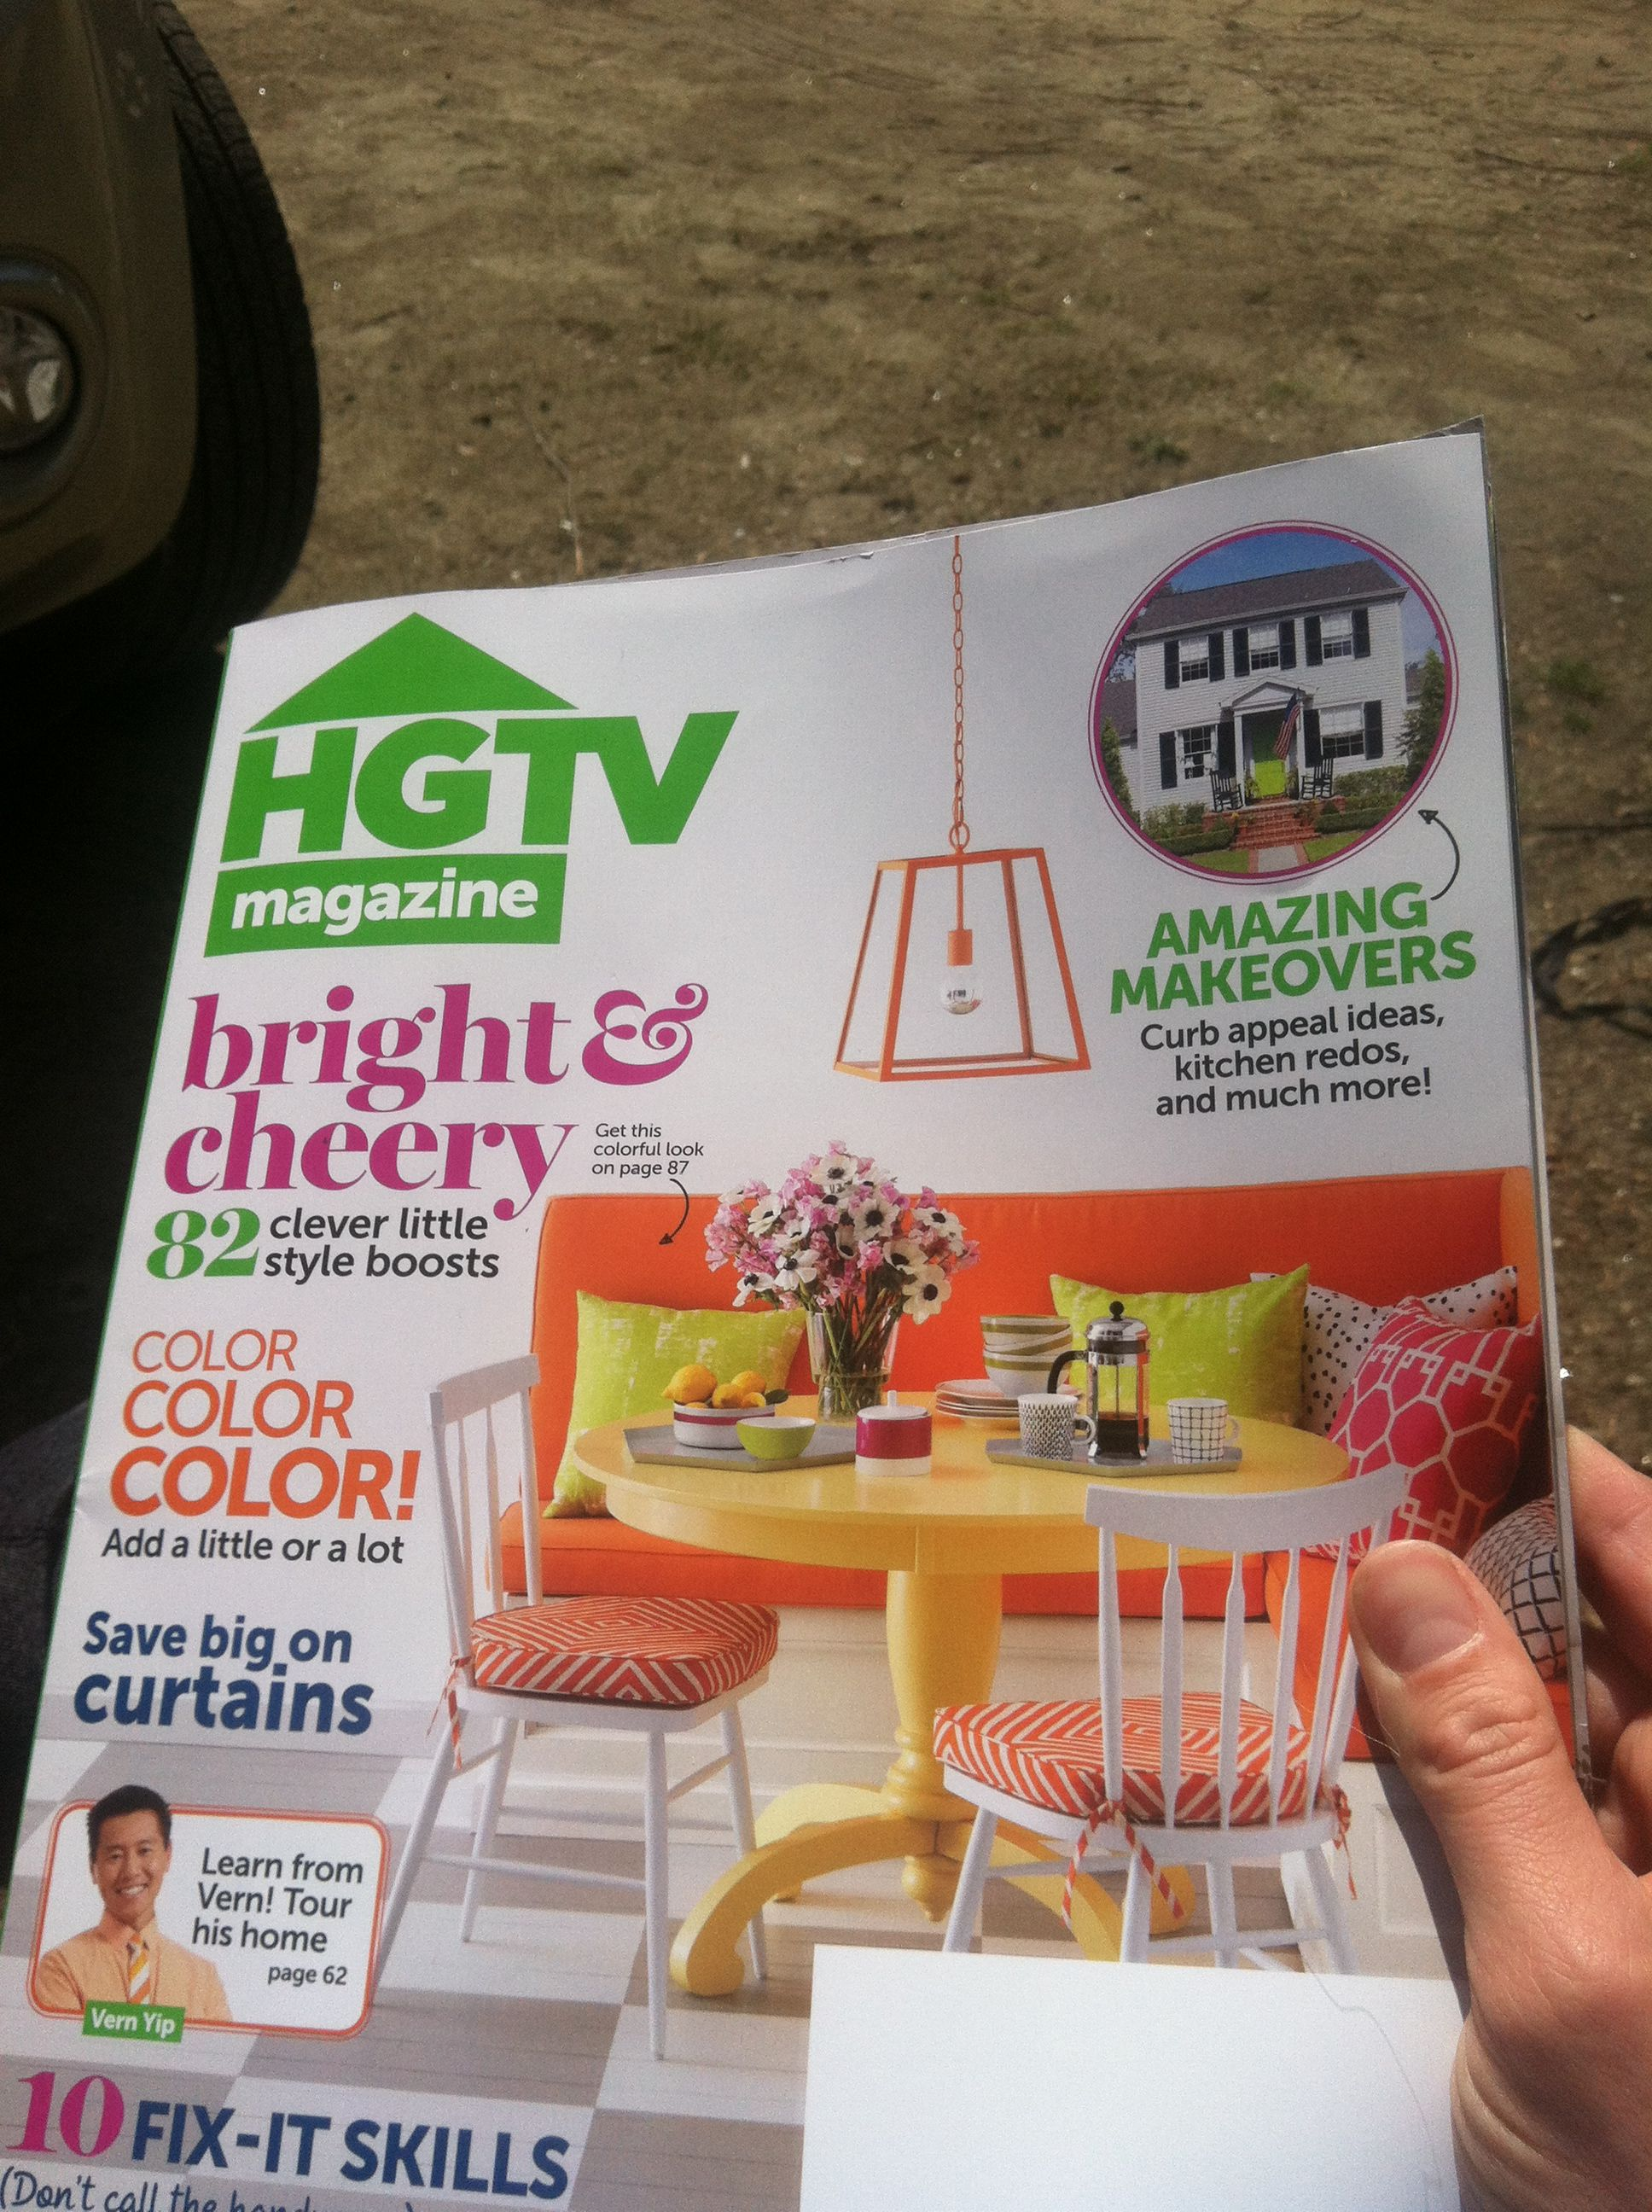 I love this magazine!!!!! Just arrived!